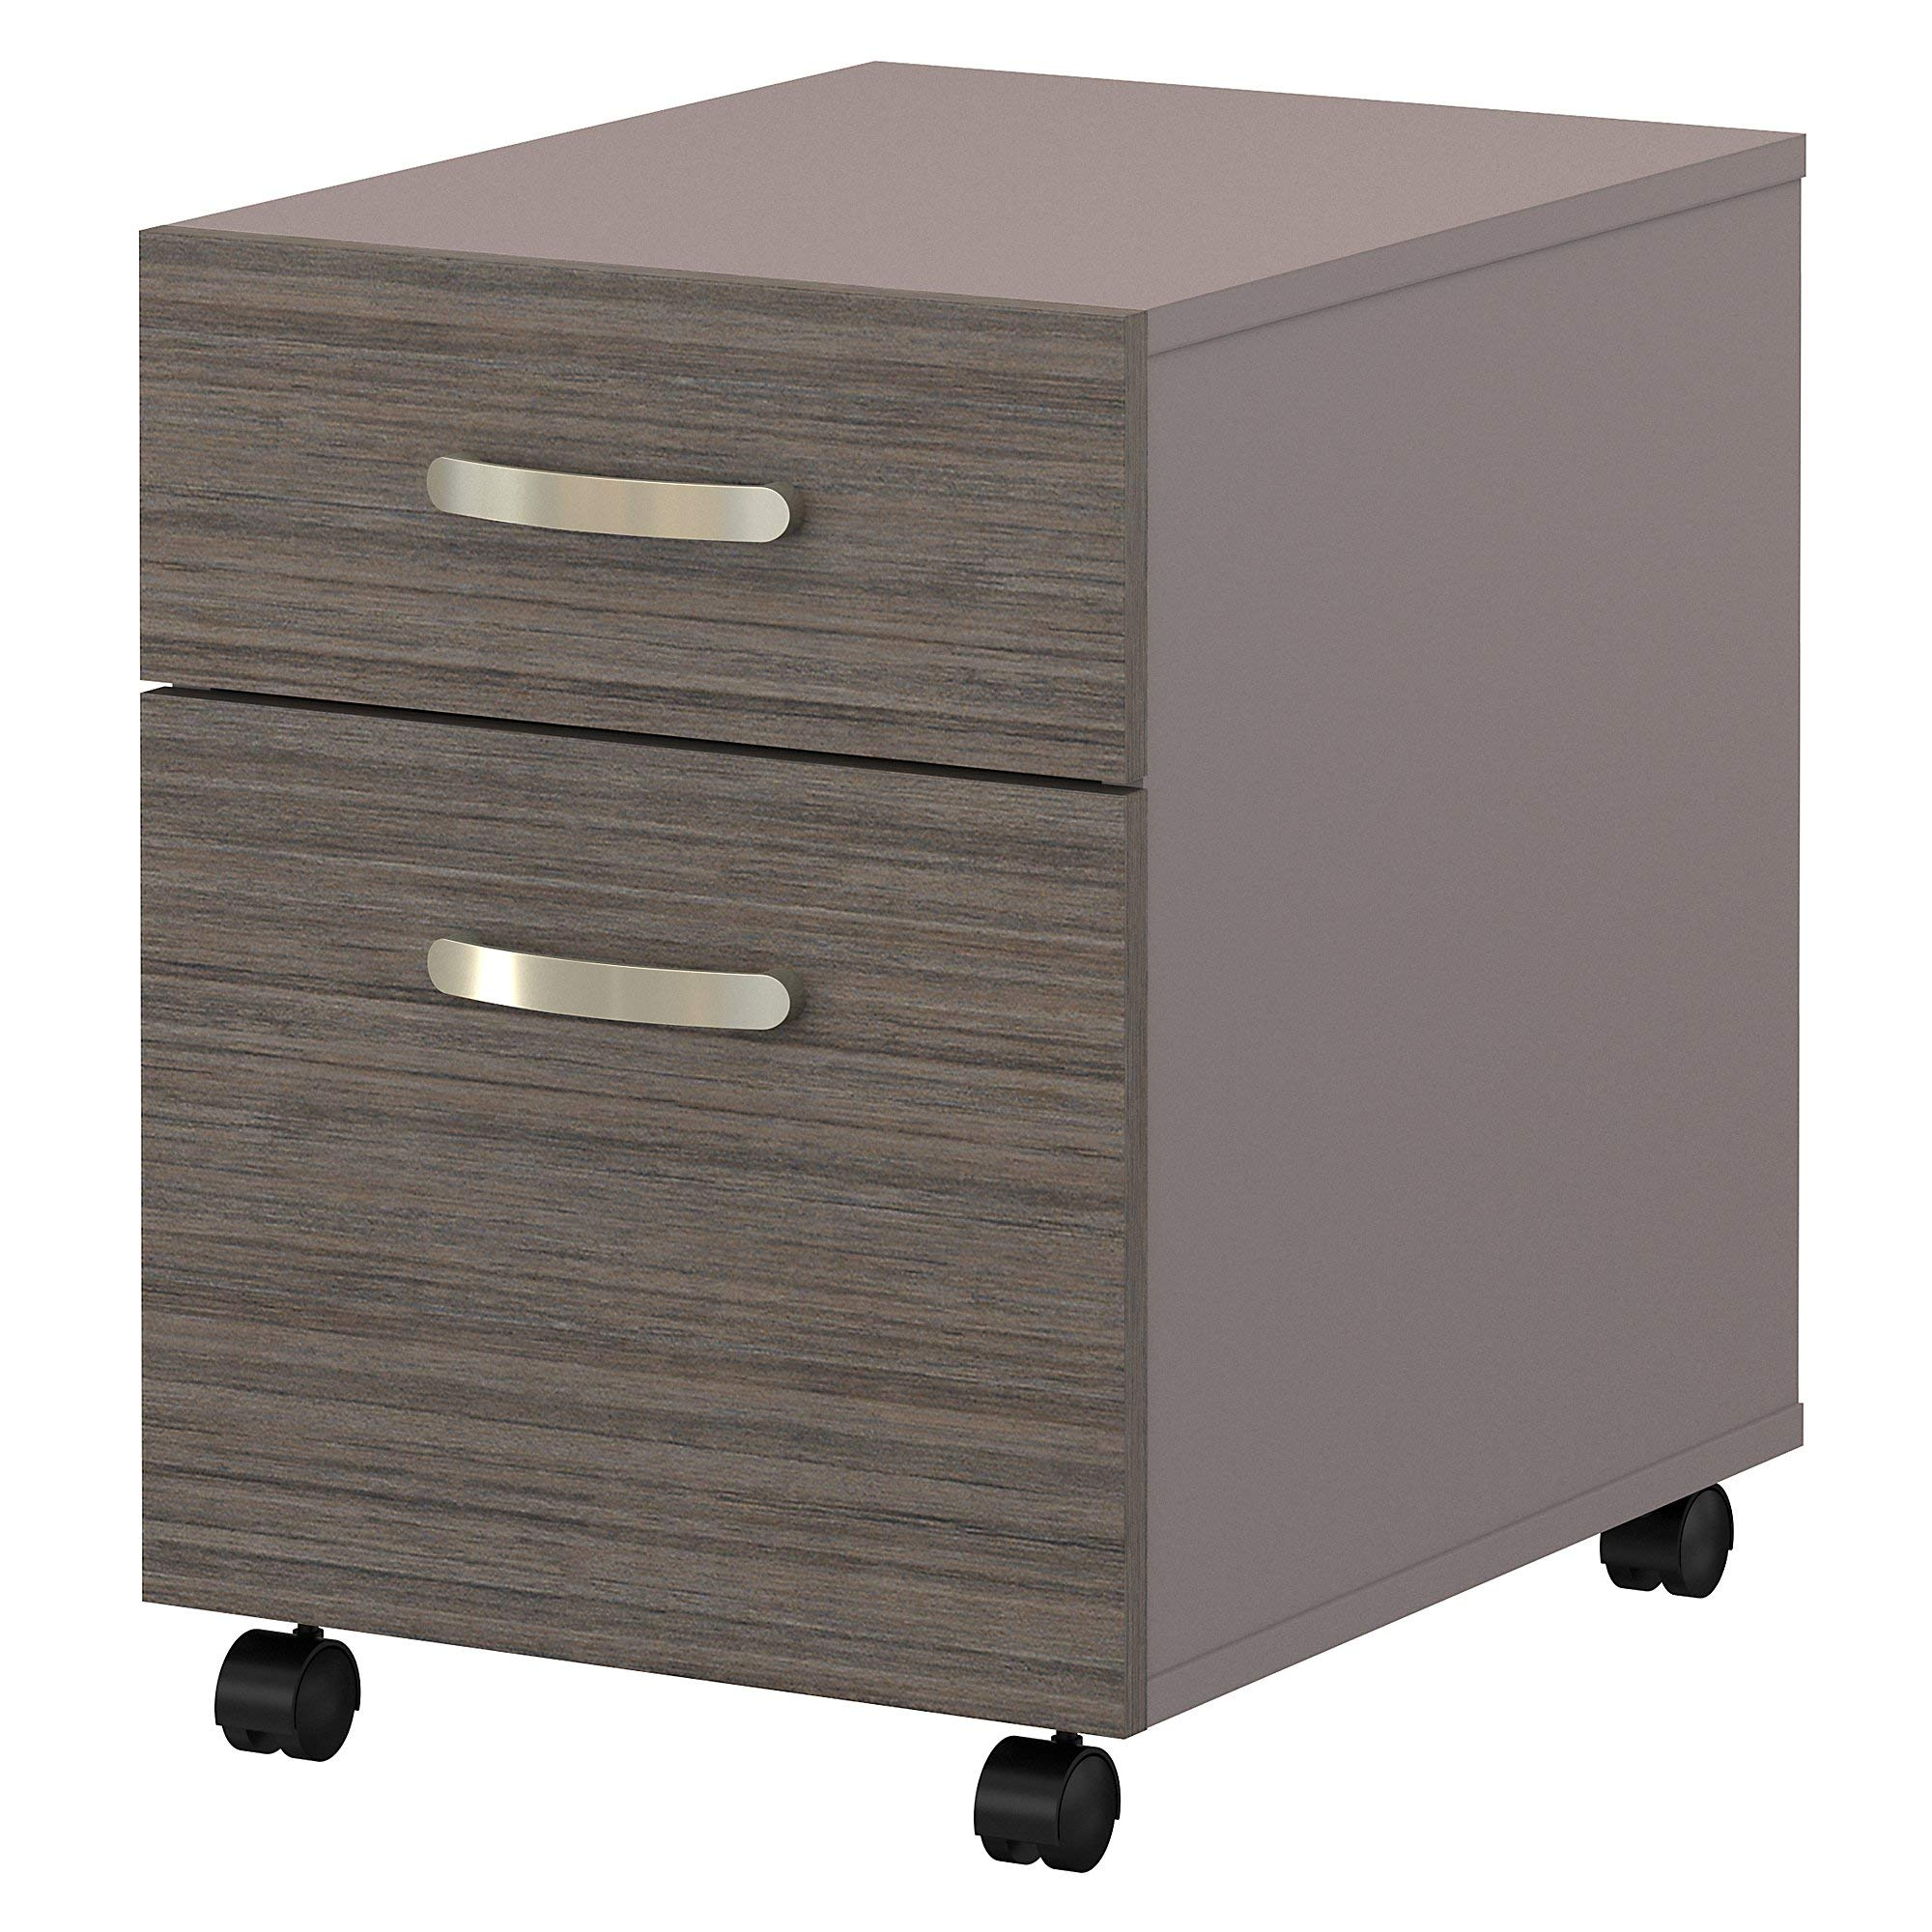 Bush Furniture Commerce 2 Drawer Mobile File Cabinet in Cocoa and Pewter by Bush Furniture (Image #1)